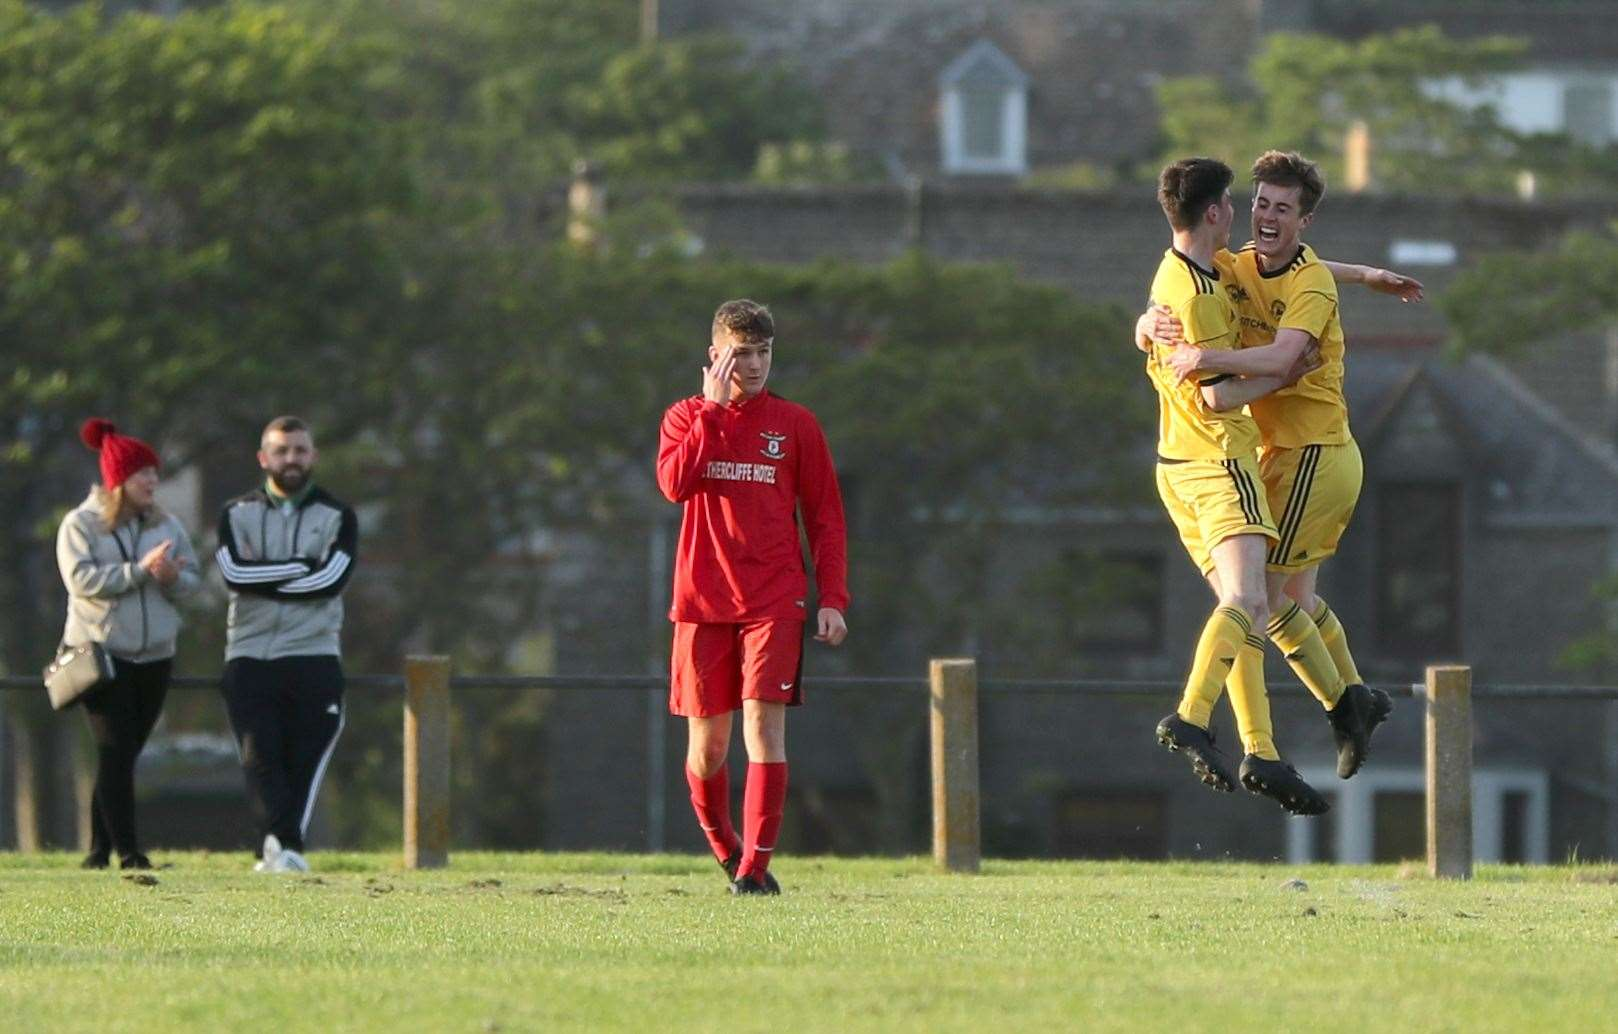 Grant Aitkenhead and Kyle Henderson celebrate a goal for Staxigoe United against Wick Groats.